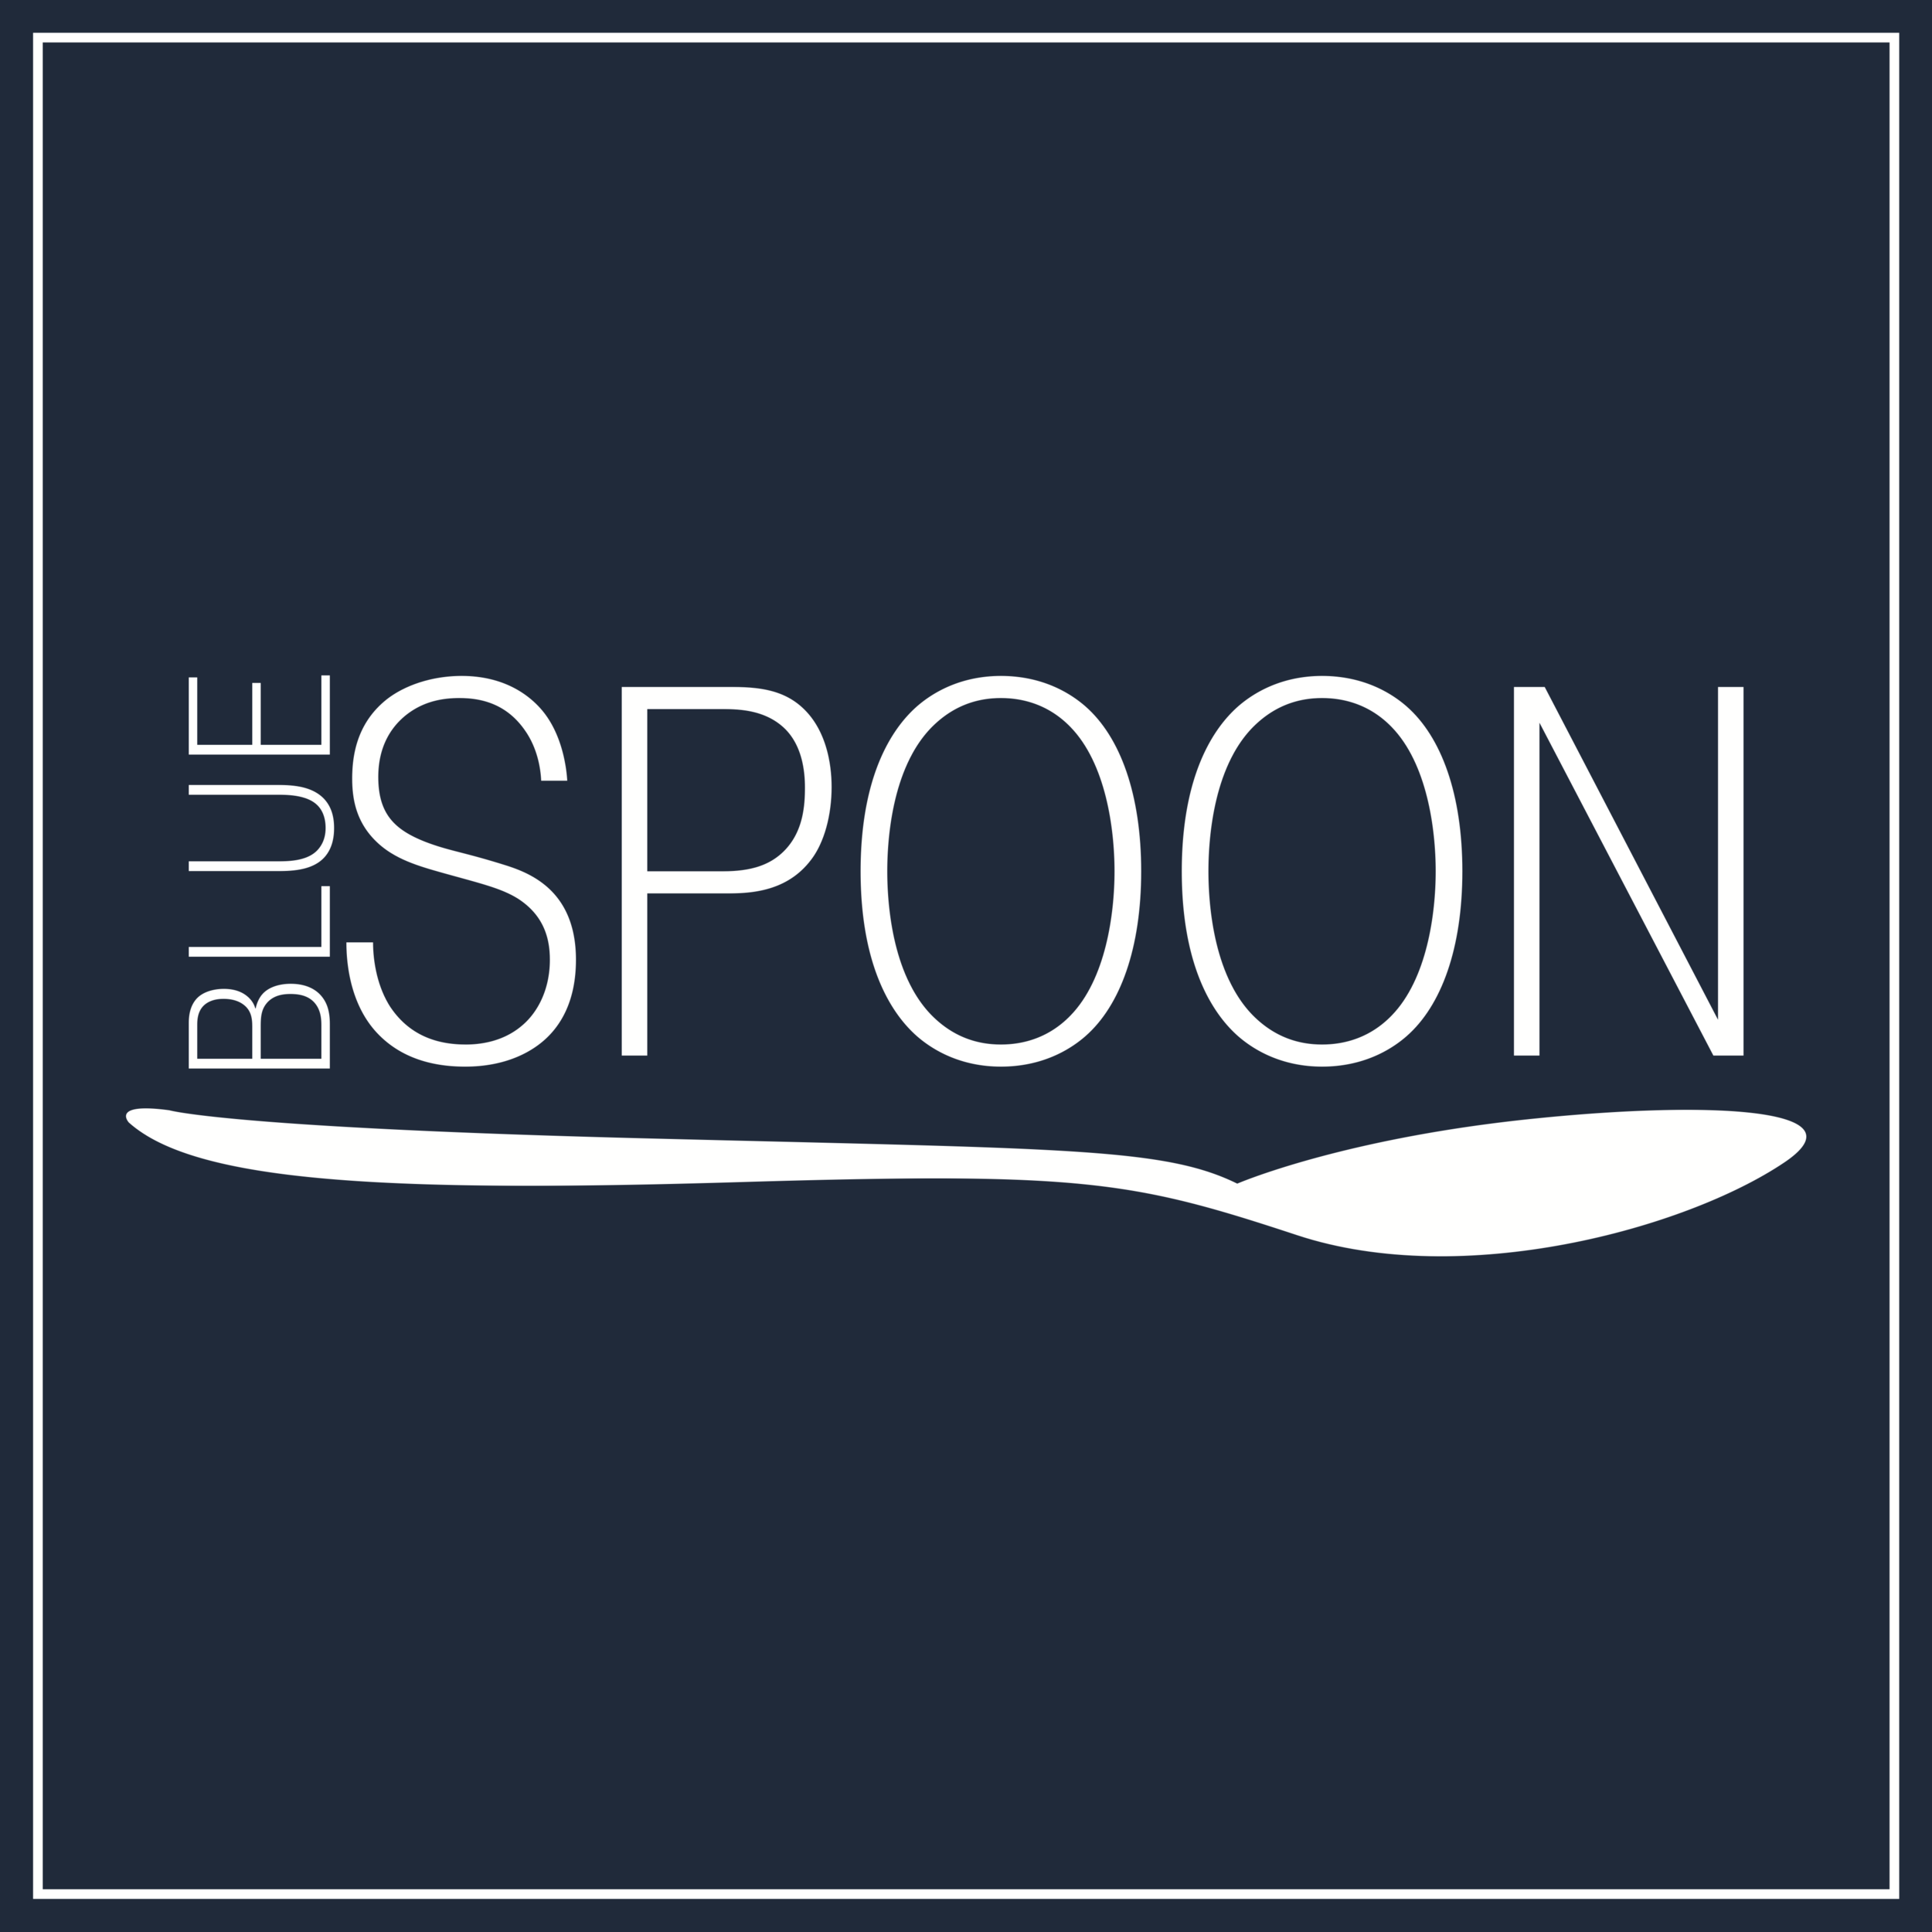 The Blue Spoon